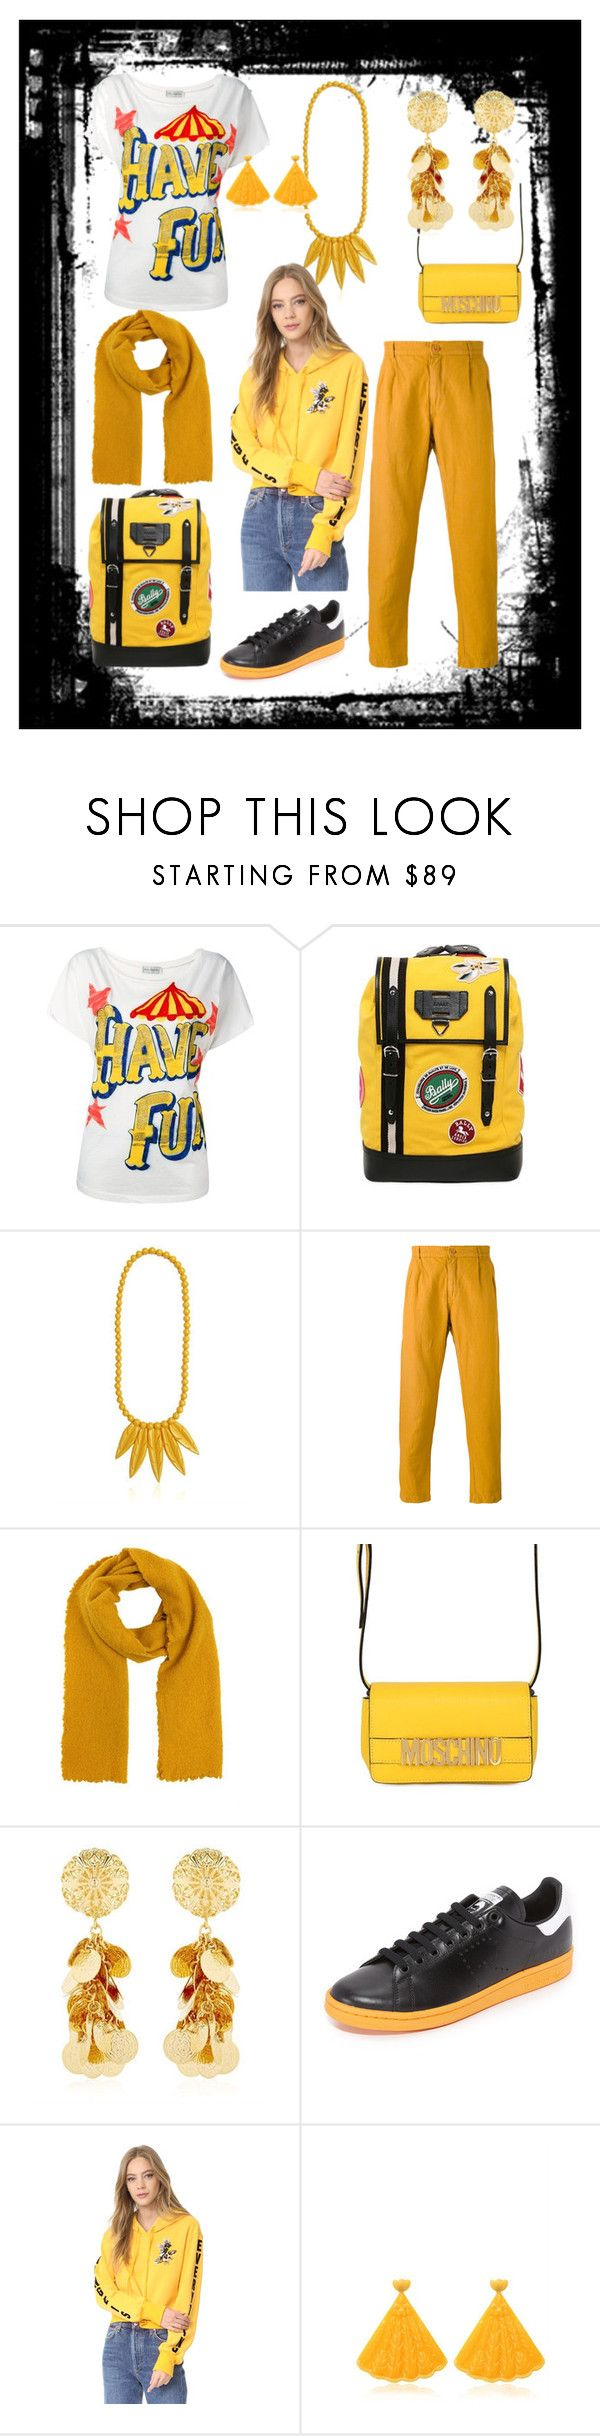 """""""to stand out"""" by emmamegan-5678 ❤ liked on Polyvore featuring Faith Connexion, Bally, Mariah Rovery, Faliero Sarti, Moschino, Tommaso Lonardo, adidas, Pam & Gela and modern"""